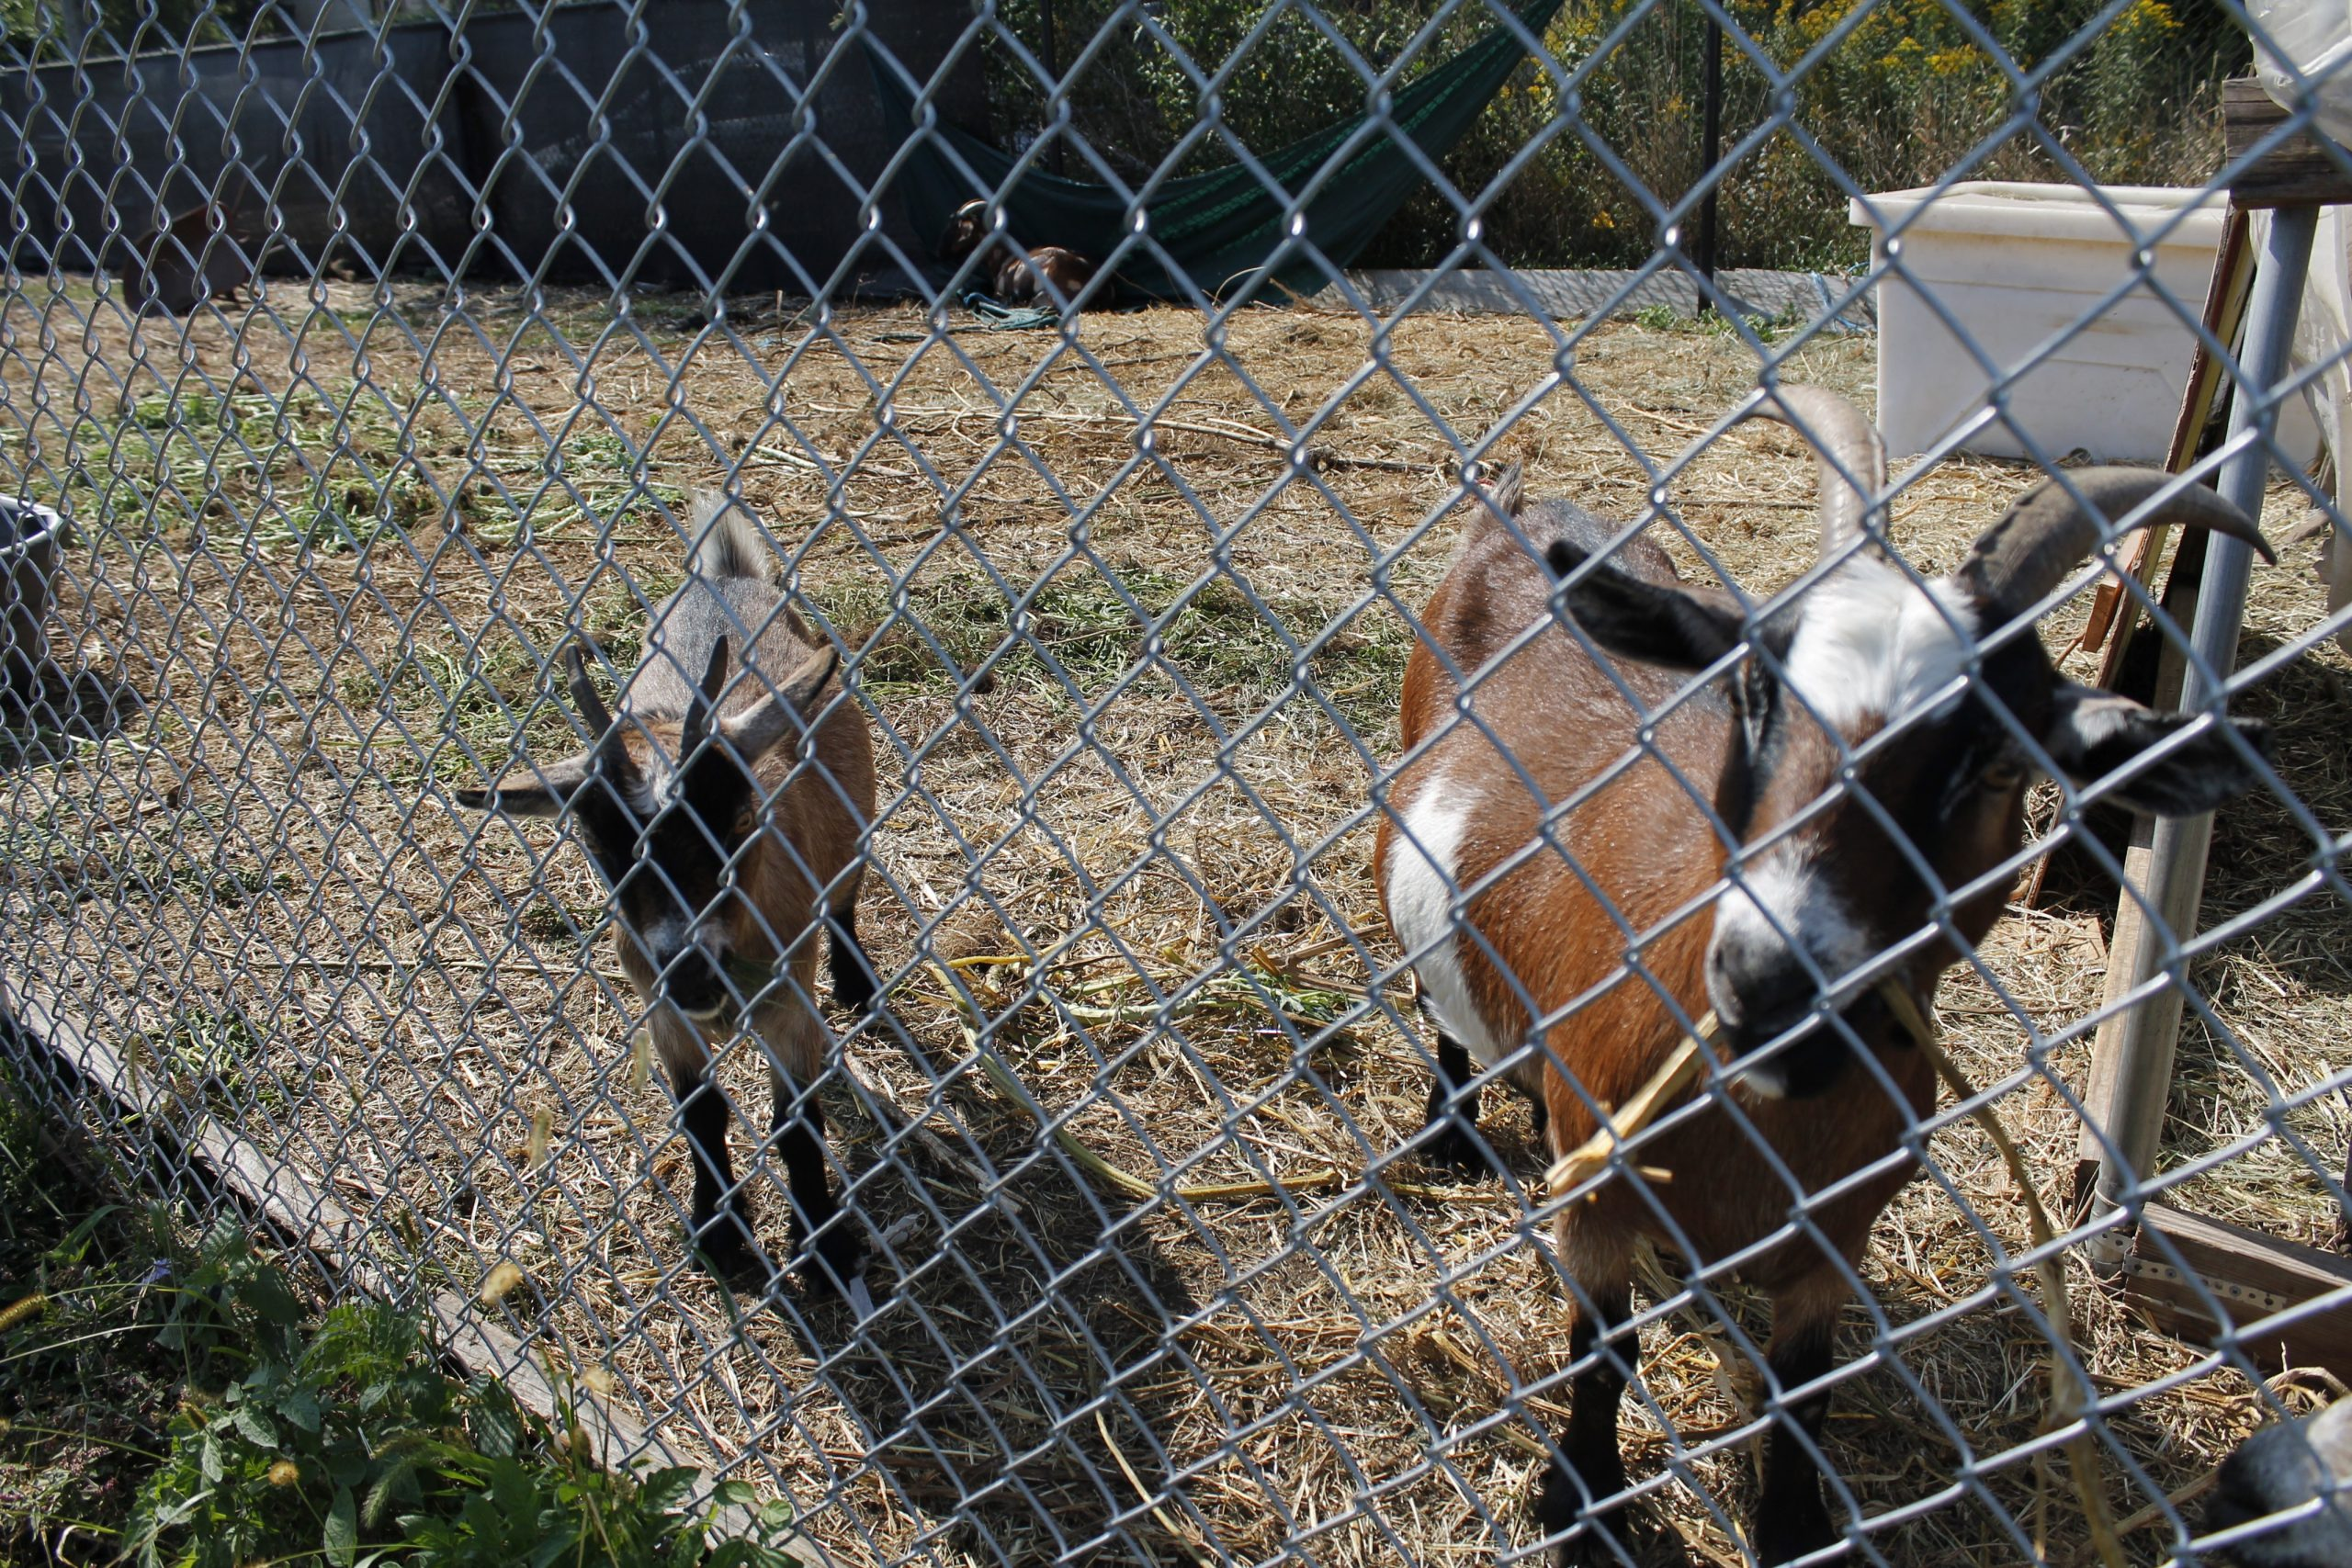 Alongside fruits, vegetables, and herbs, several goats also call the South Chicago UGC farm home. Feeding them is as simple as plucking nearby grass and sticking it through the fence.